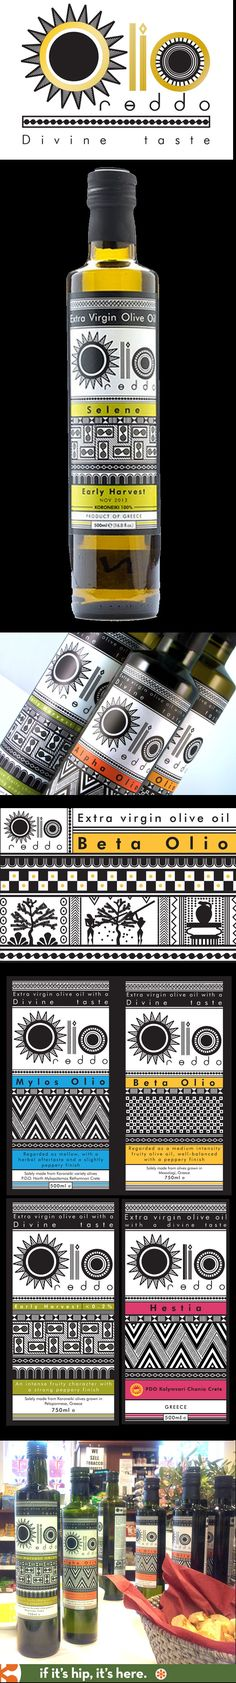 Olio Reddo Olive Oils and their wonderful branding and label designs by Create-A-Brand.